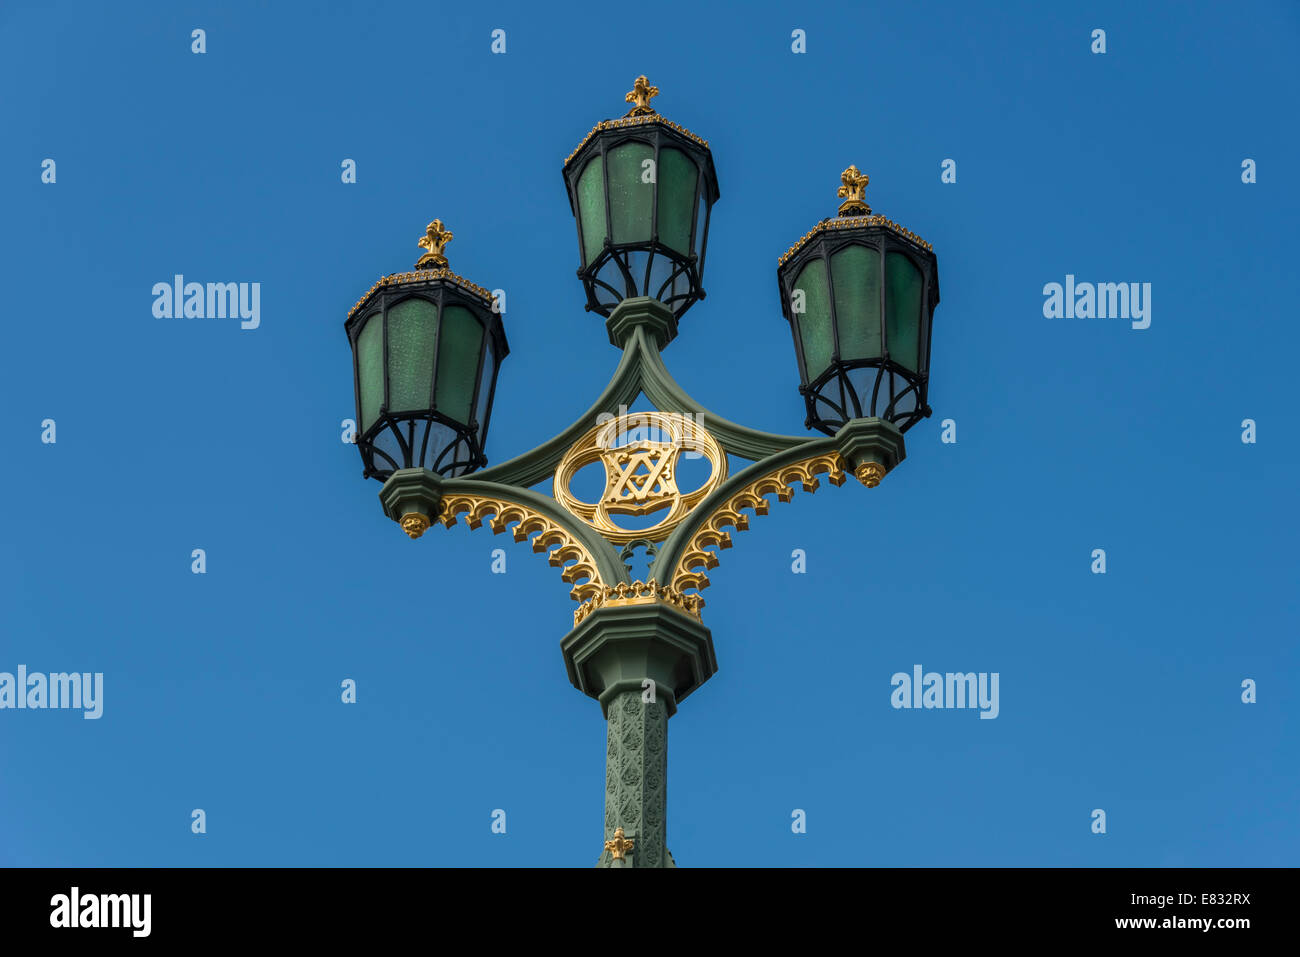 Ornate Victorian street lamps on Westminster Bridge in London Stock Photo